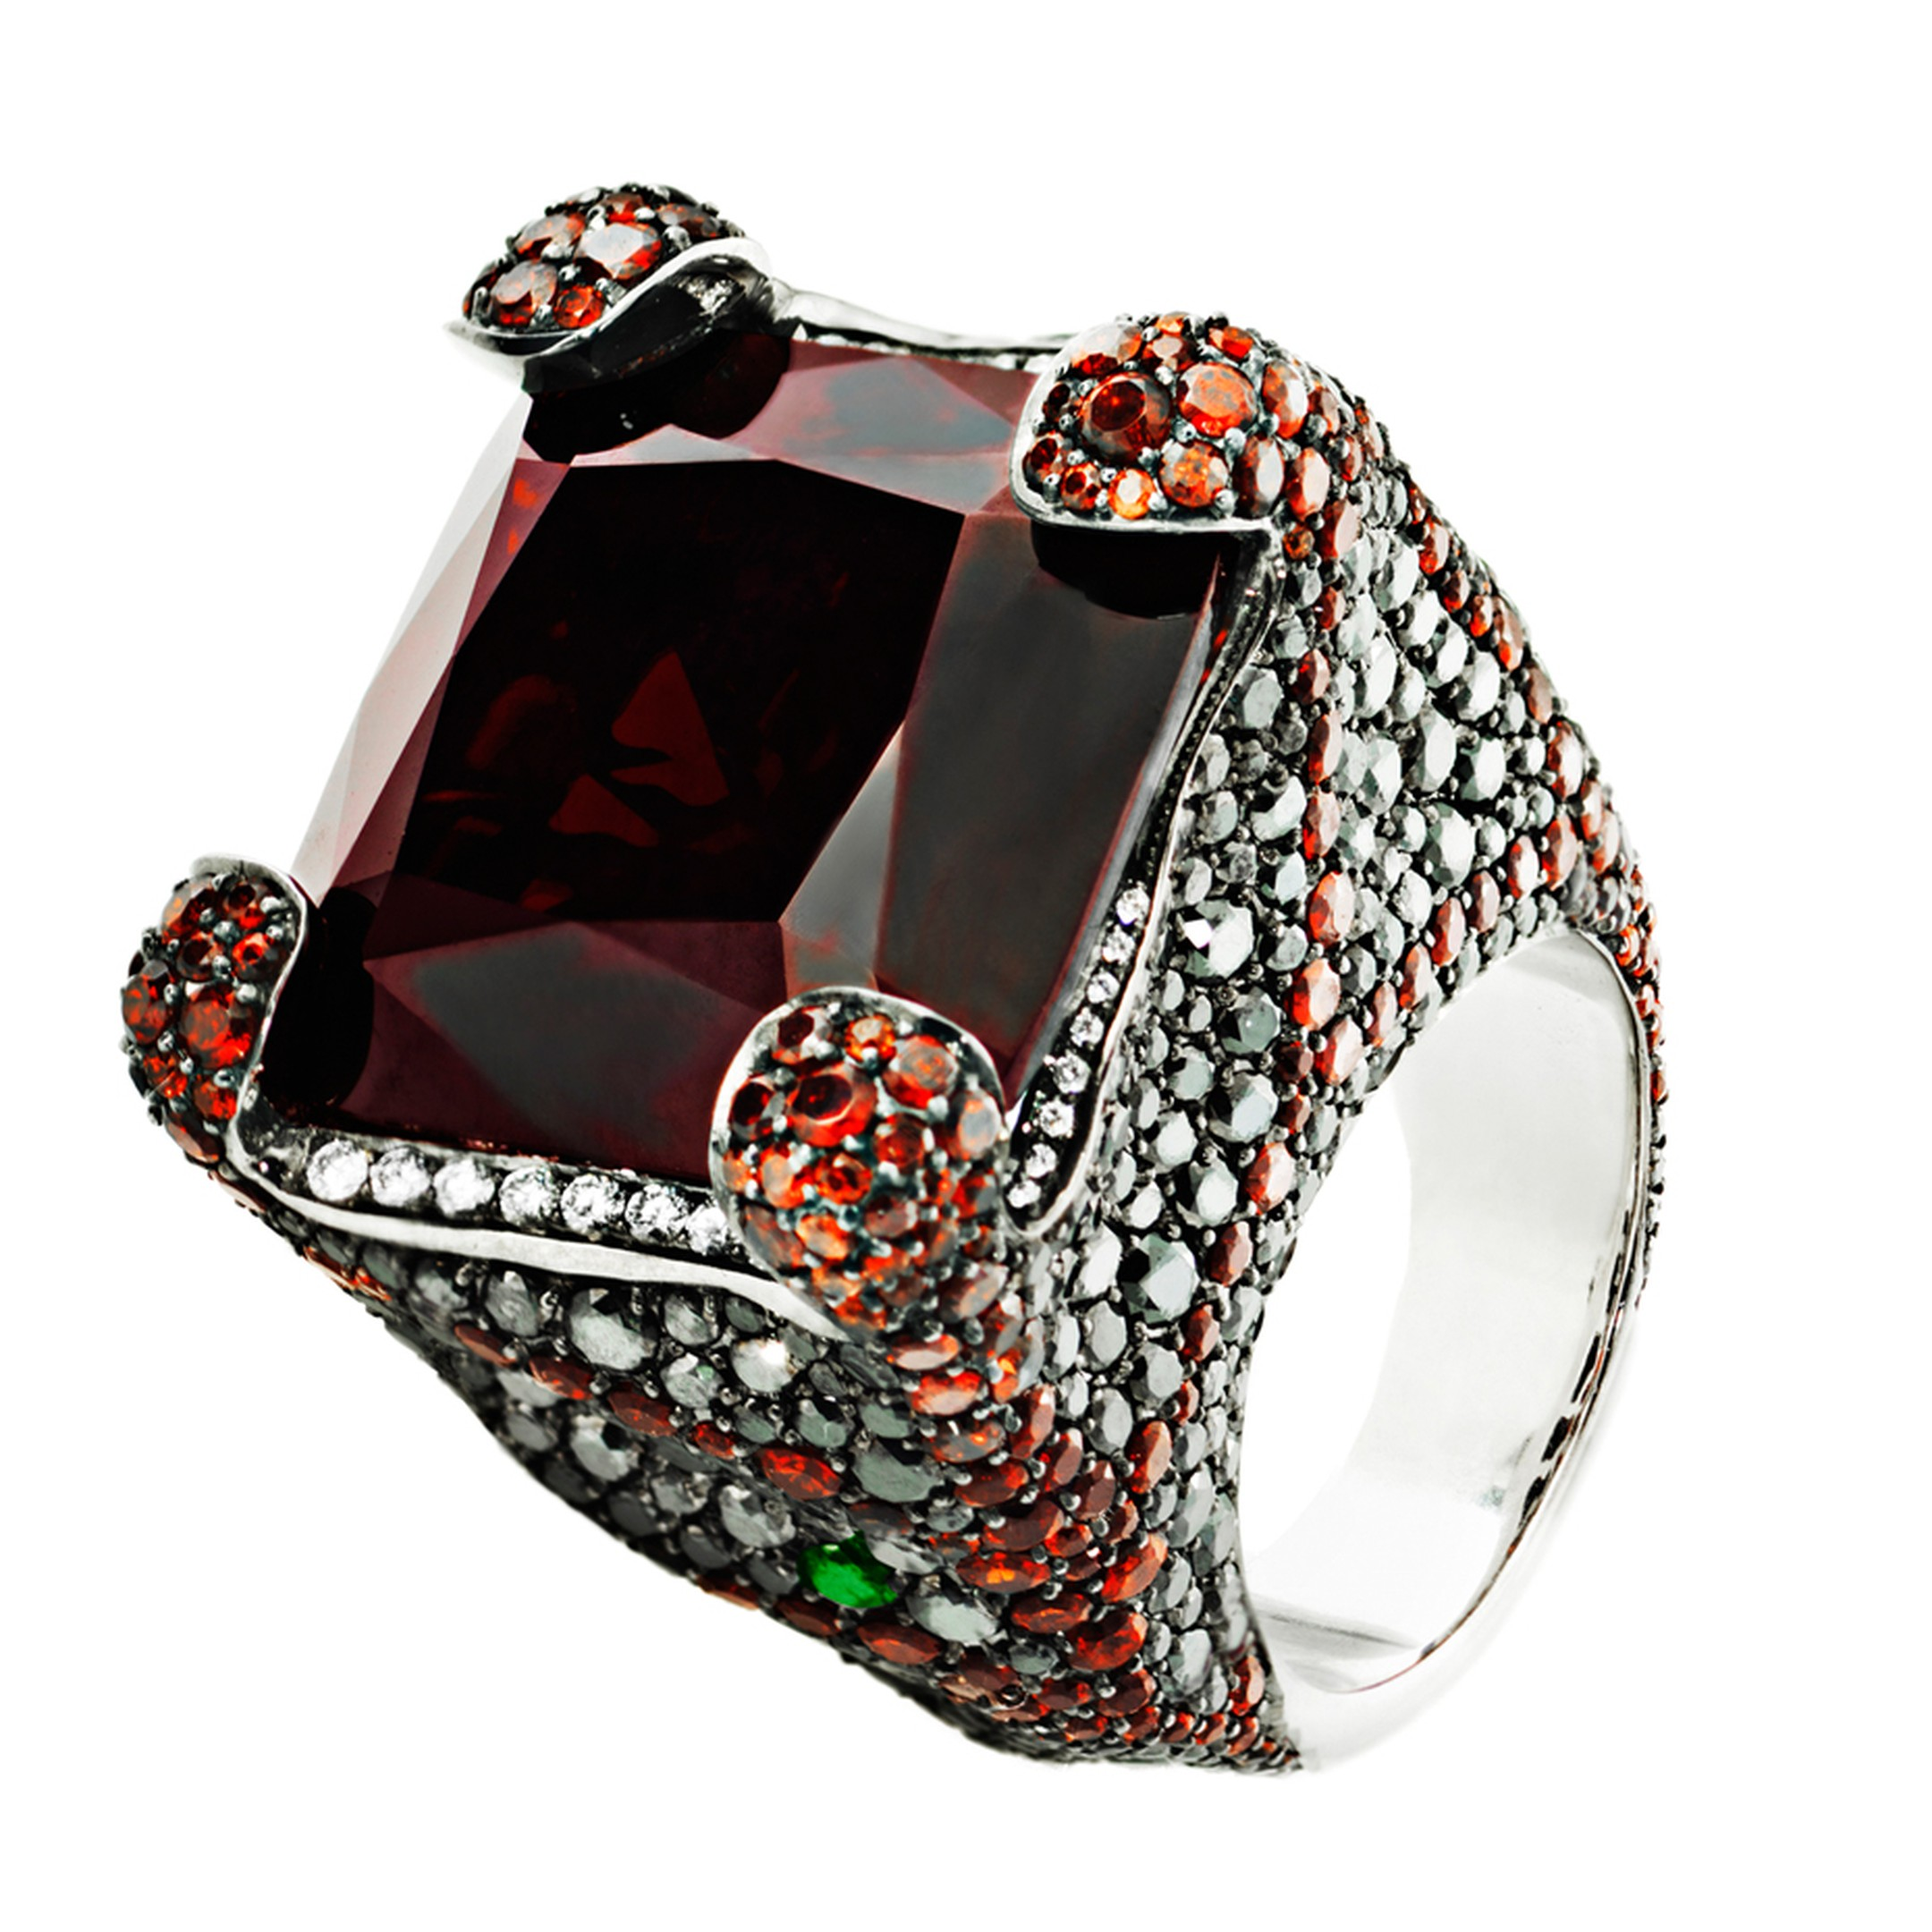 Crow's Nest ring set with white and black diamonds, a central red garnet and a pear-shaped tsavorite, from the Deluxe Russian Grooves collection.